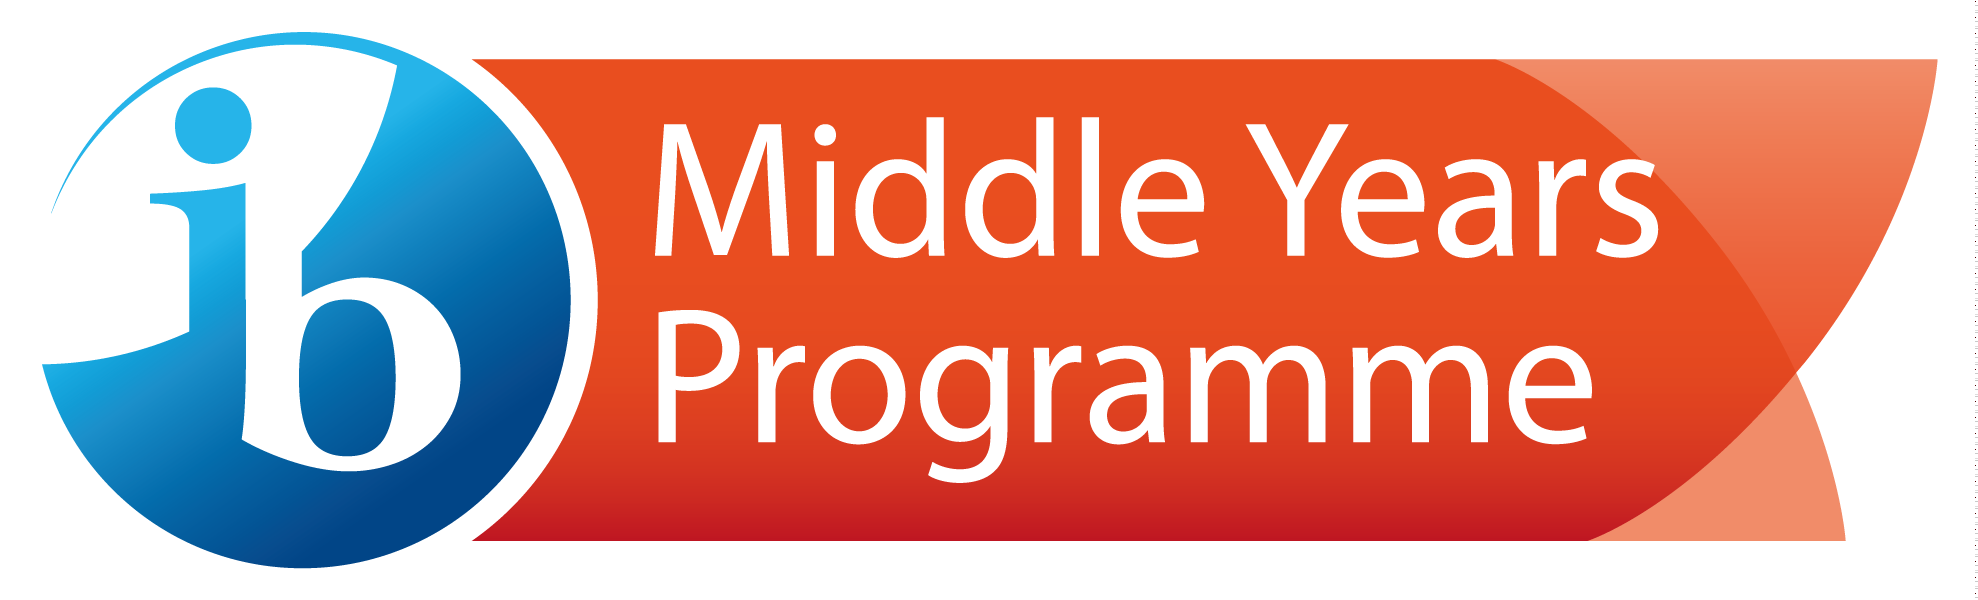 Middle Years Programme Icon